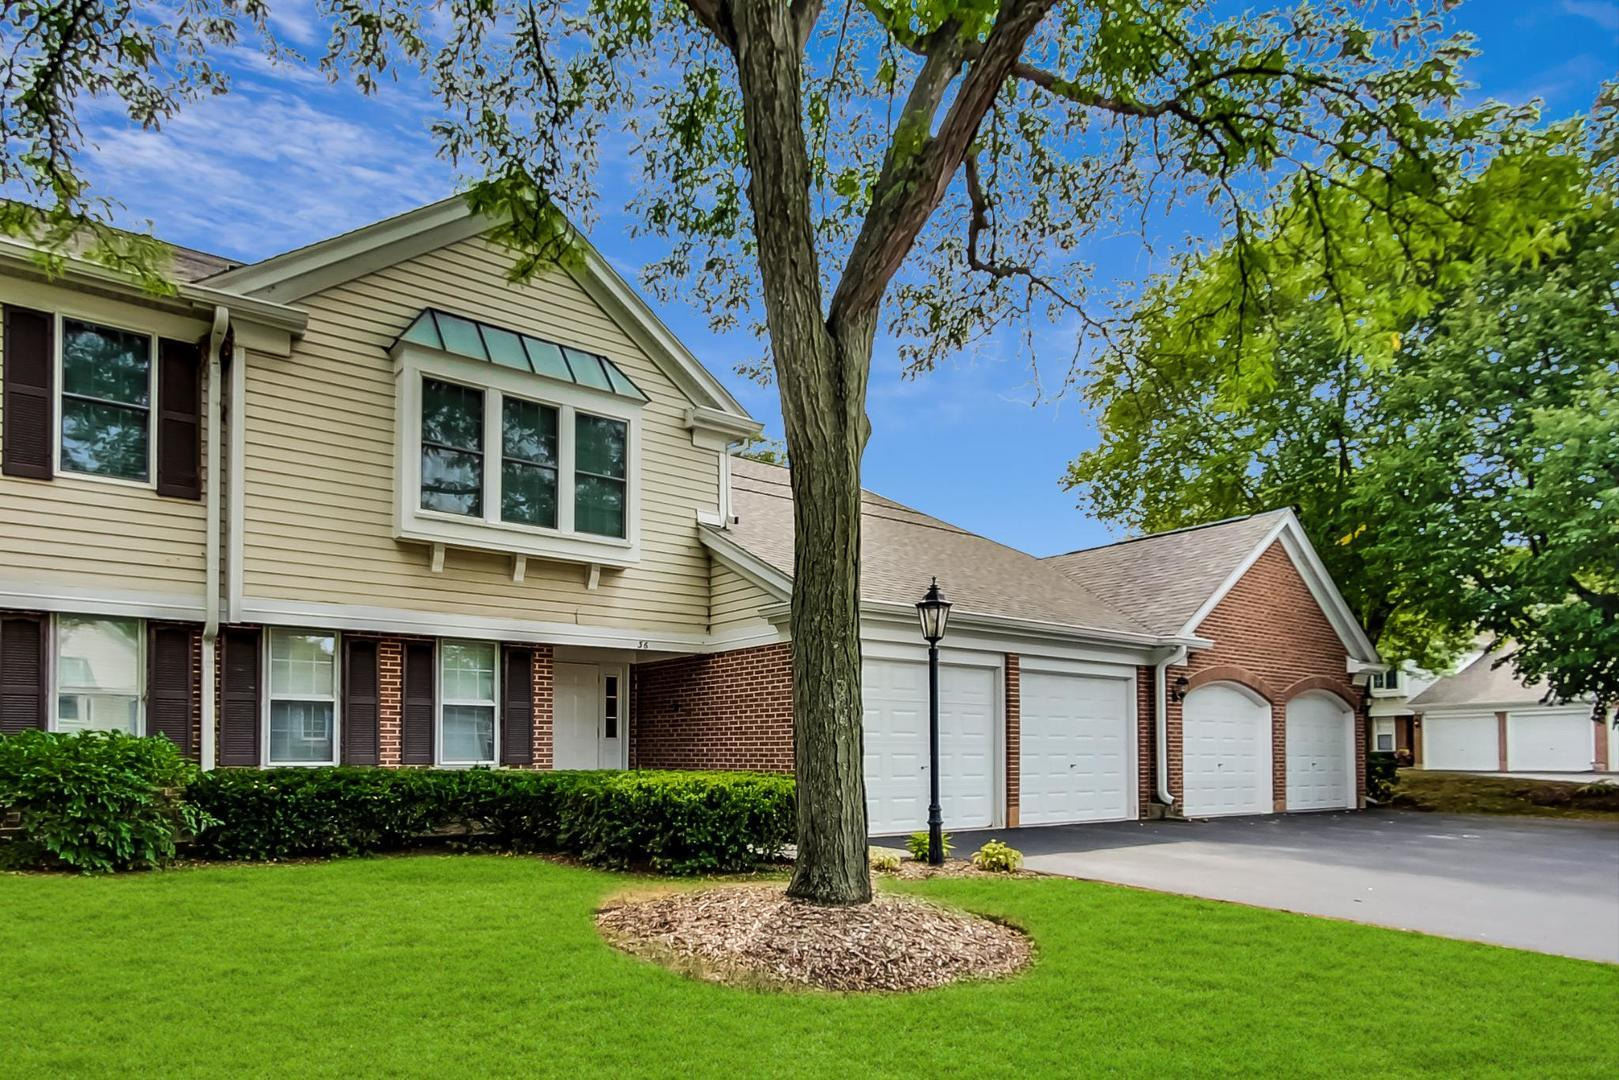 36 COUNTRY CLUB Drive #D, Prospect Heights, IL 60070 - #: 10837057